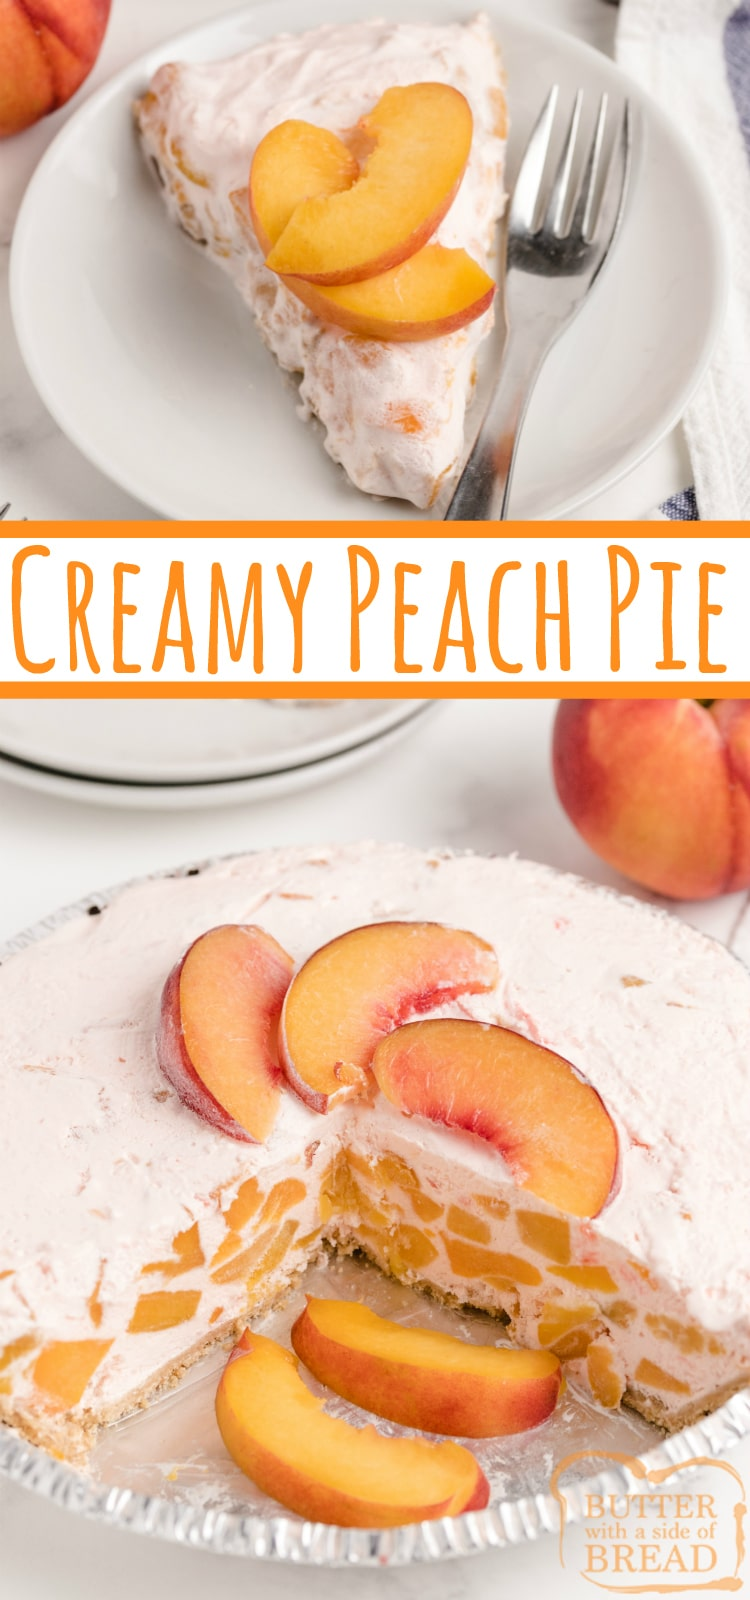 Creamy Peach Pie is made with only 5 ingredients in less than five minutes! Peach Jell-O, vanilla ice cream and fresh peaches are combined into a delicious, no-bake pie recipe!